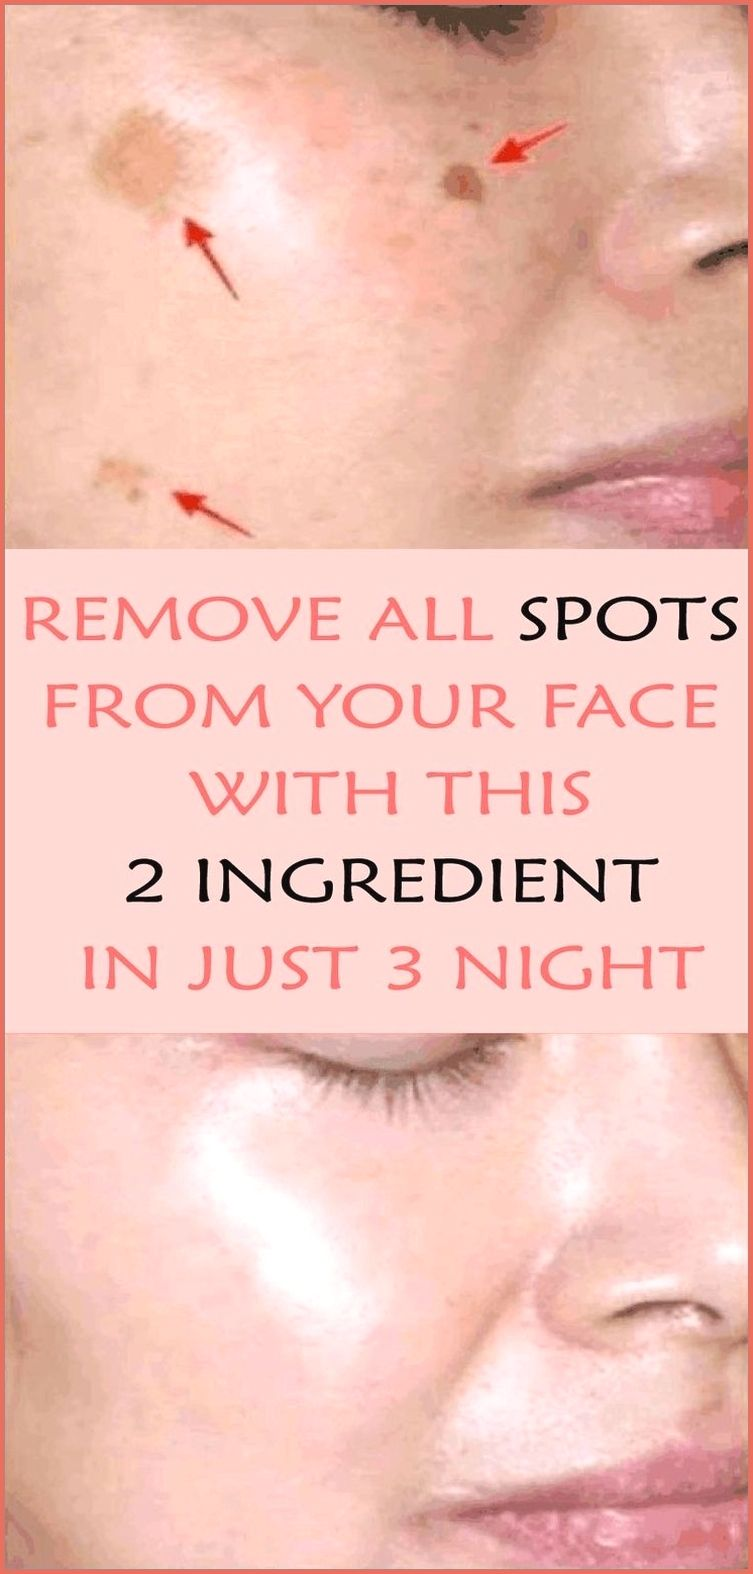 Removes All Spots On Your Face In Just 3 Nights